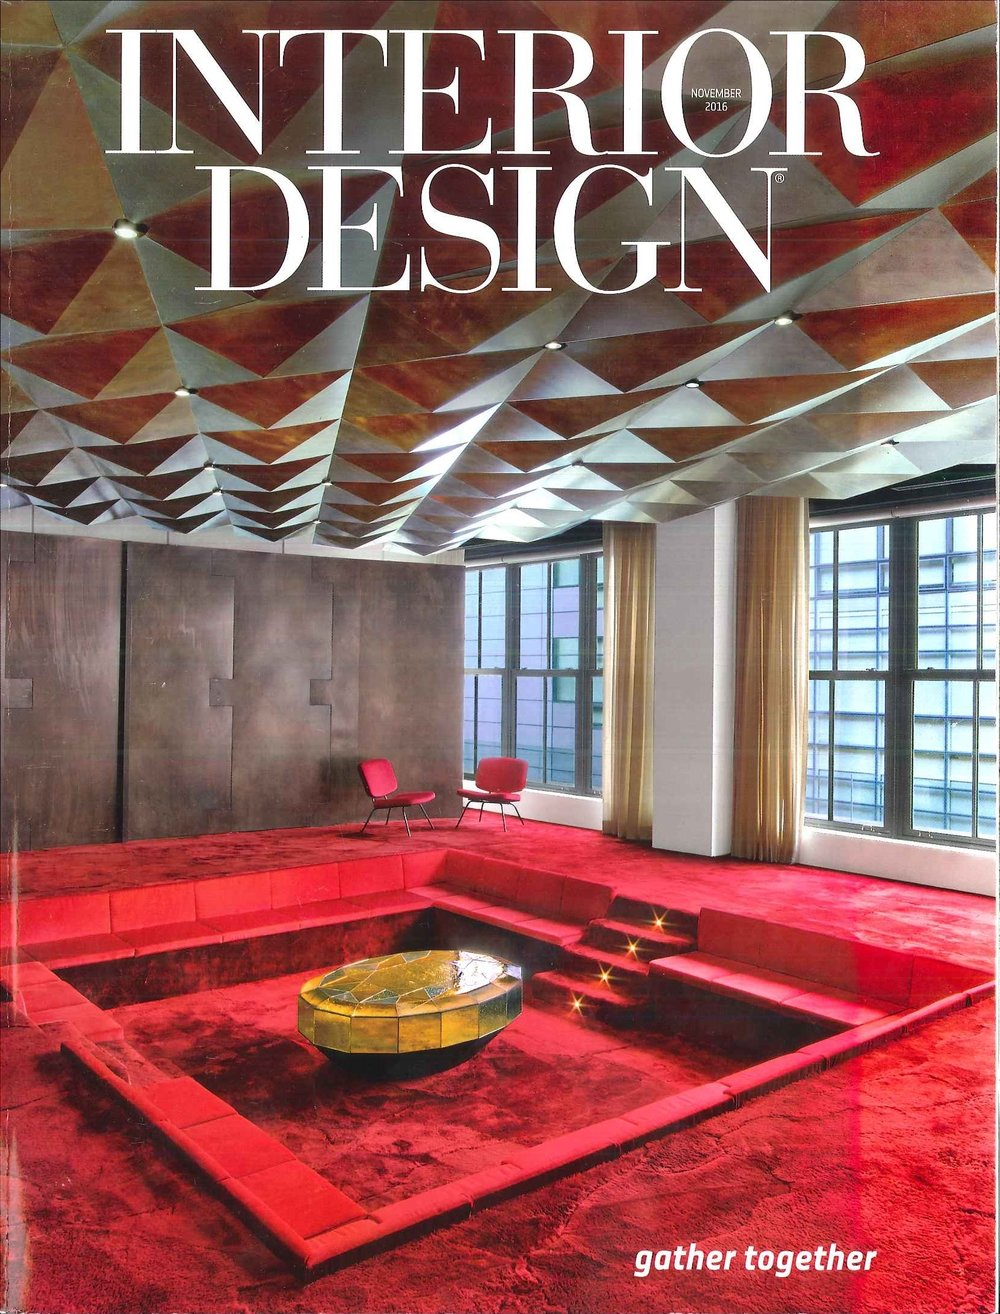 US Interior Design / Nov. 2016